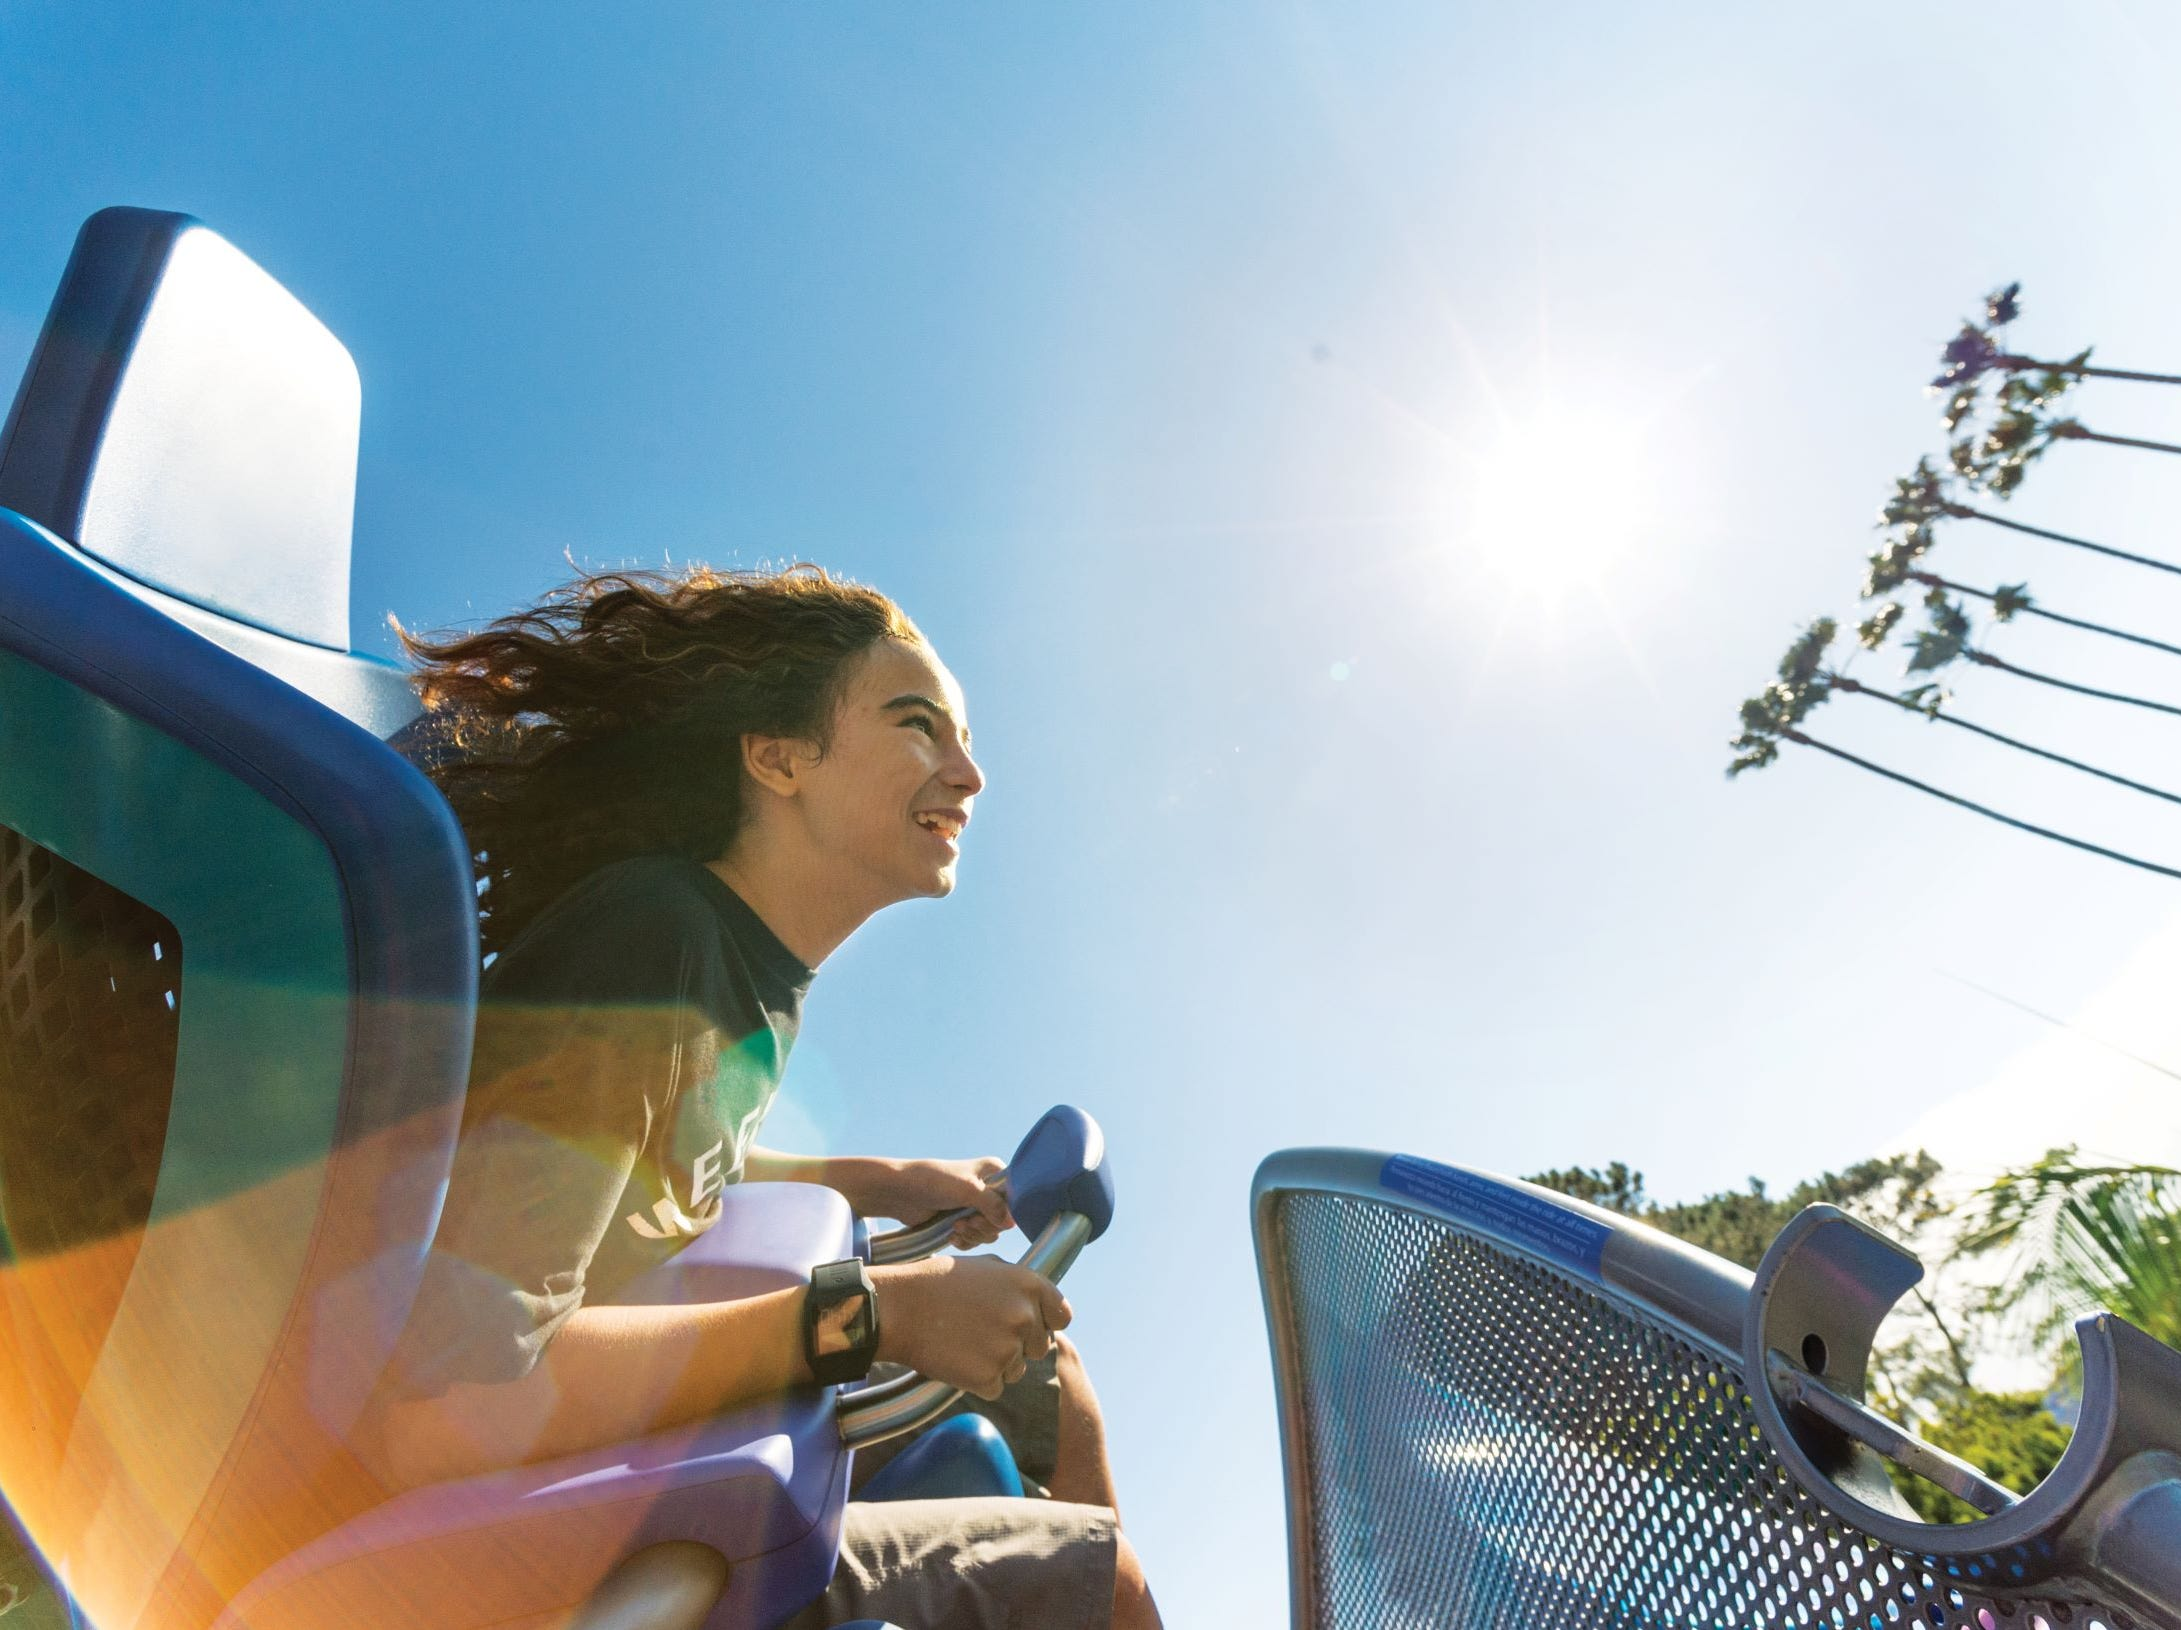 On board the Manta, a double-launch roller coaster at SeaWorld San Diego.